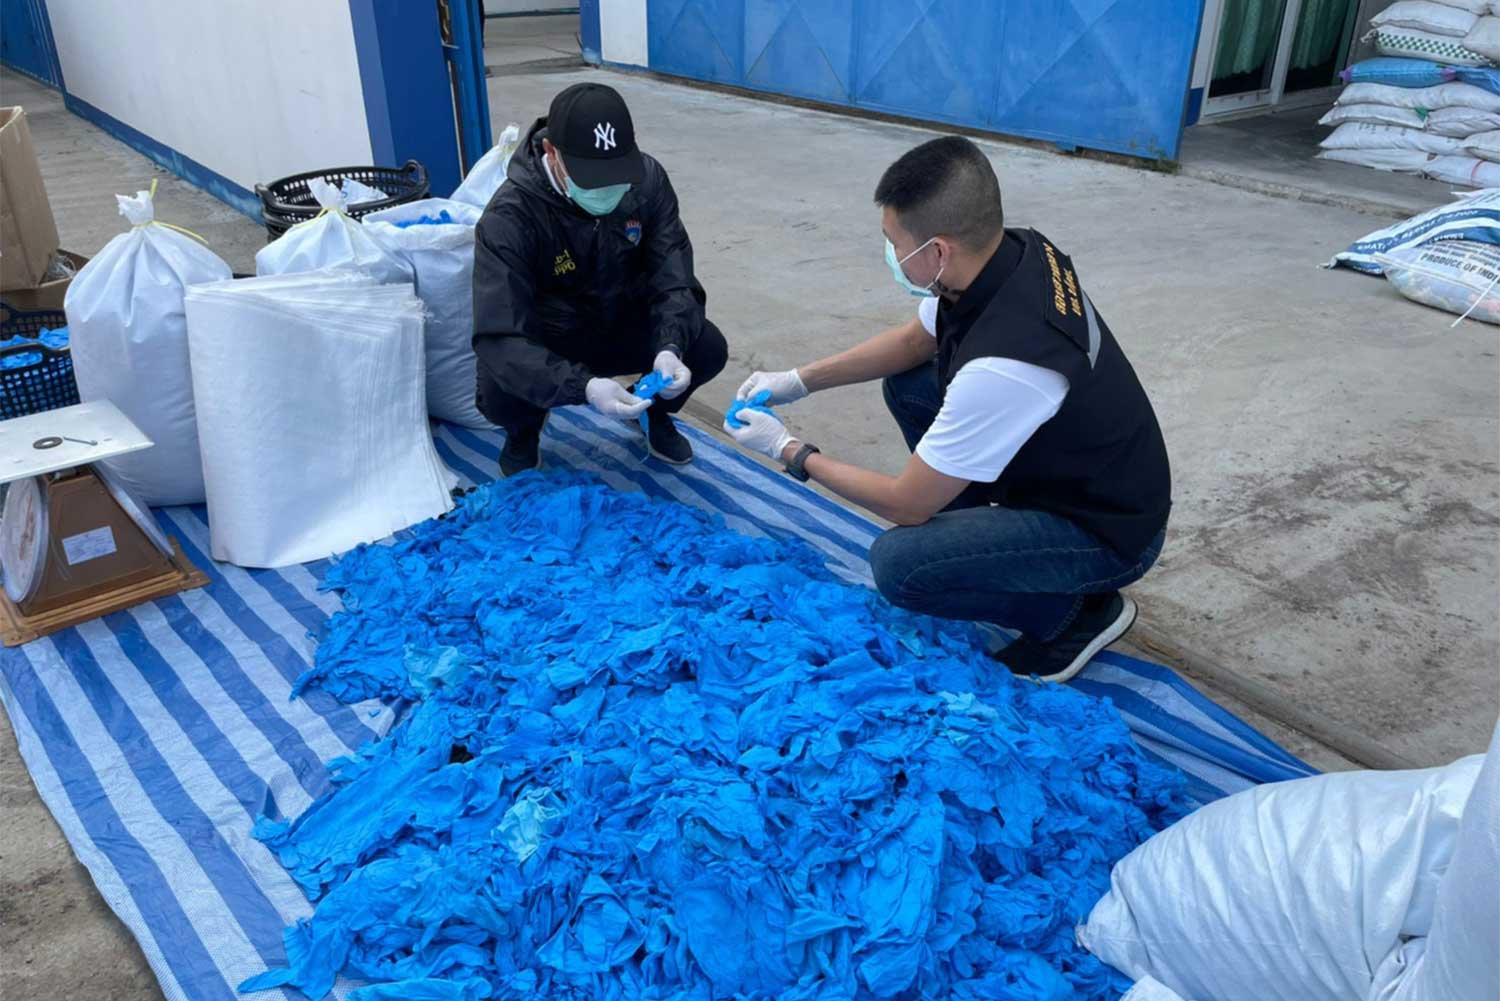 Police examine used gloves which were washed and ready for packing for resale, at a  warehouse in Lat Lum Kaeo district, Pathum Thani province, on Wednesday. About 37 tonnes of gloves were seized, worth about 6 million baht. (Photo supplied/Wassayos Ngamkham)